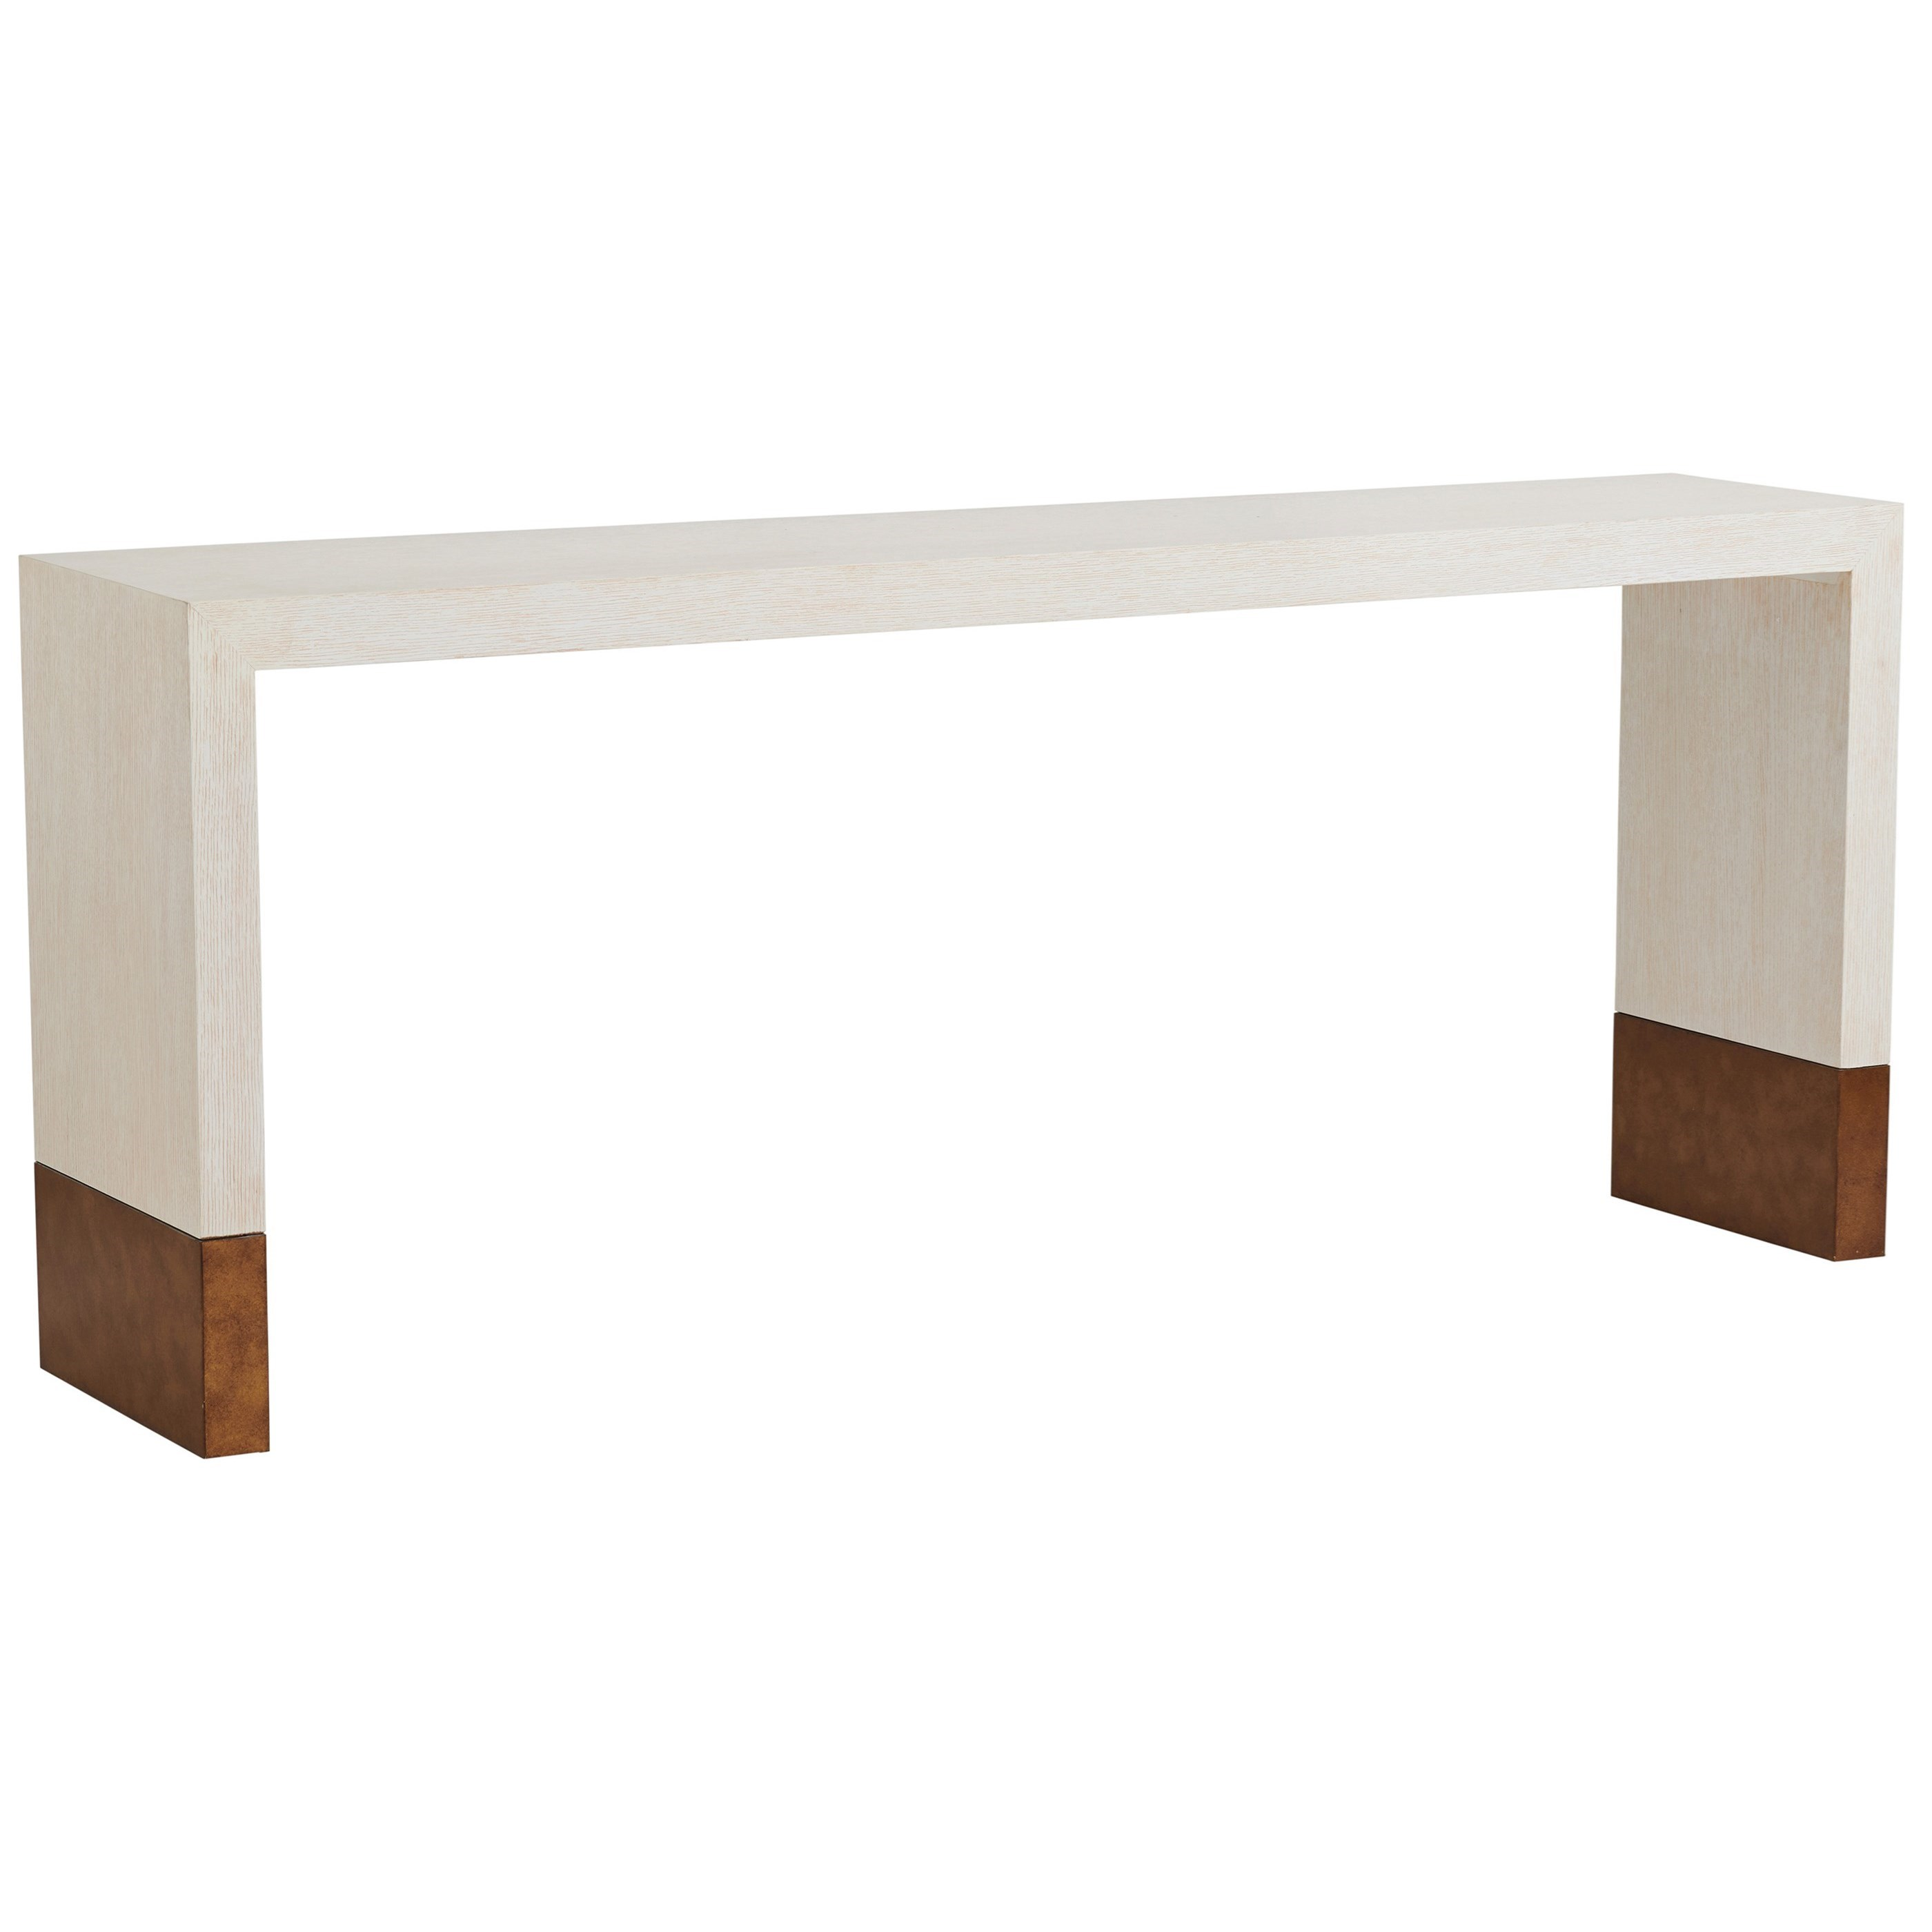 Carmel Spindrift Console by Barclay Butera at Baer's Furniture